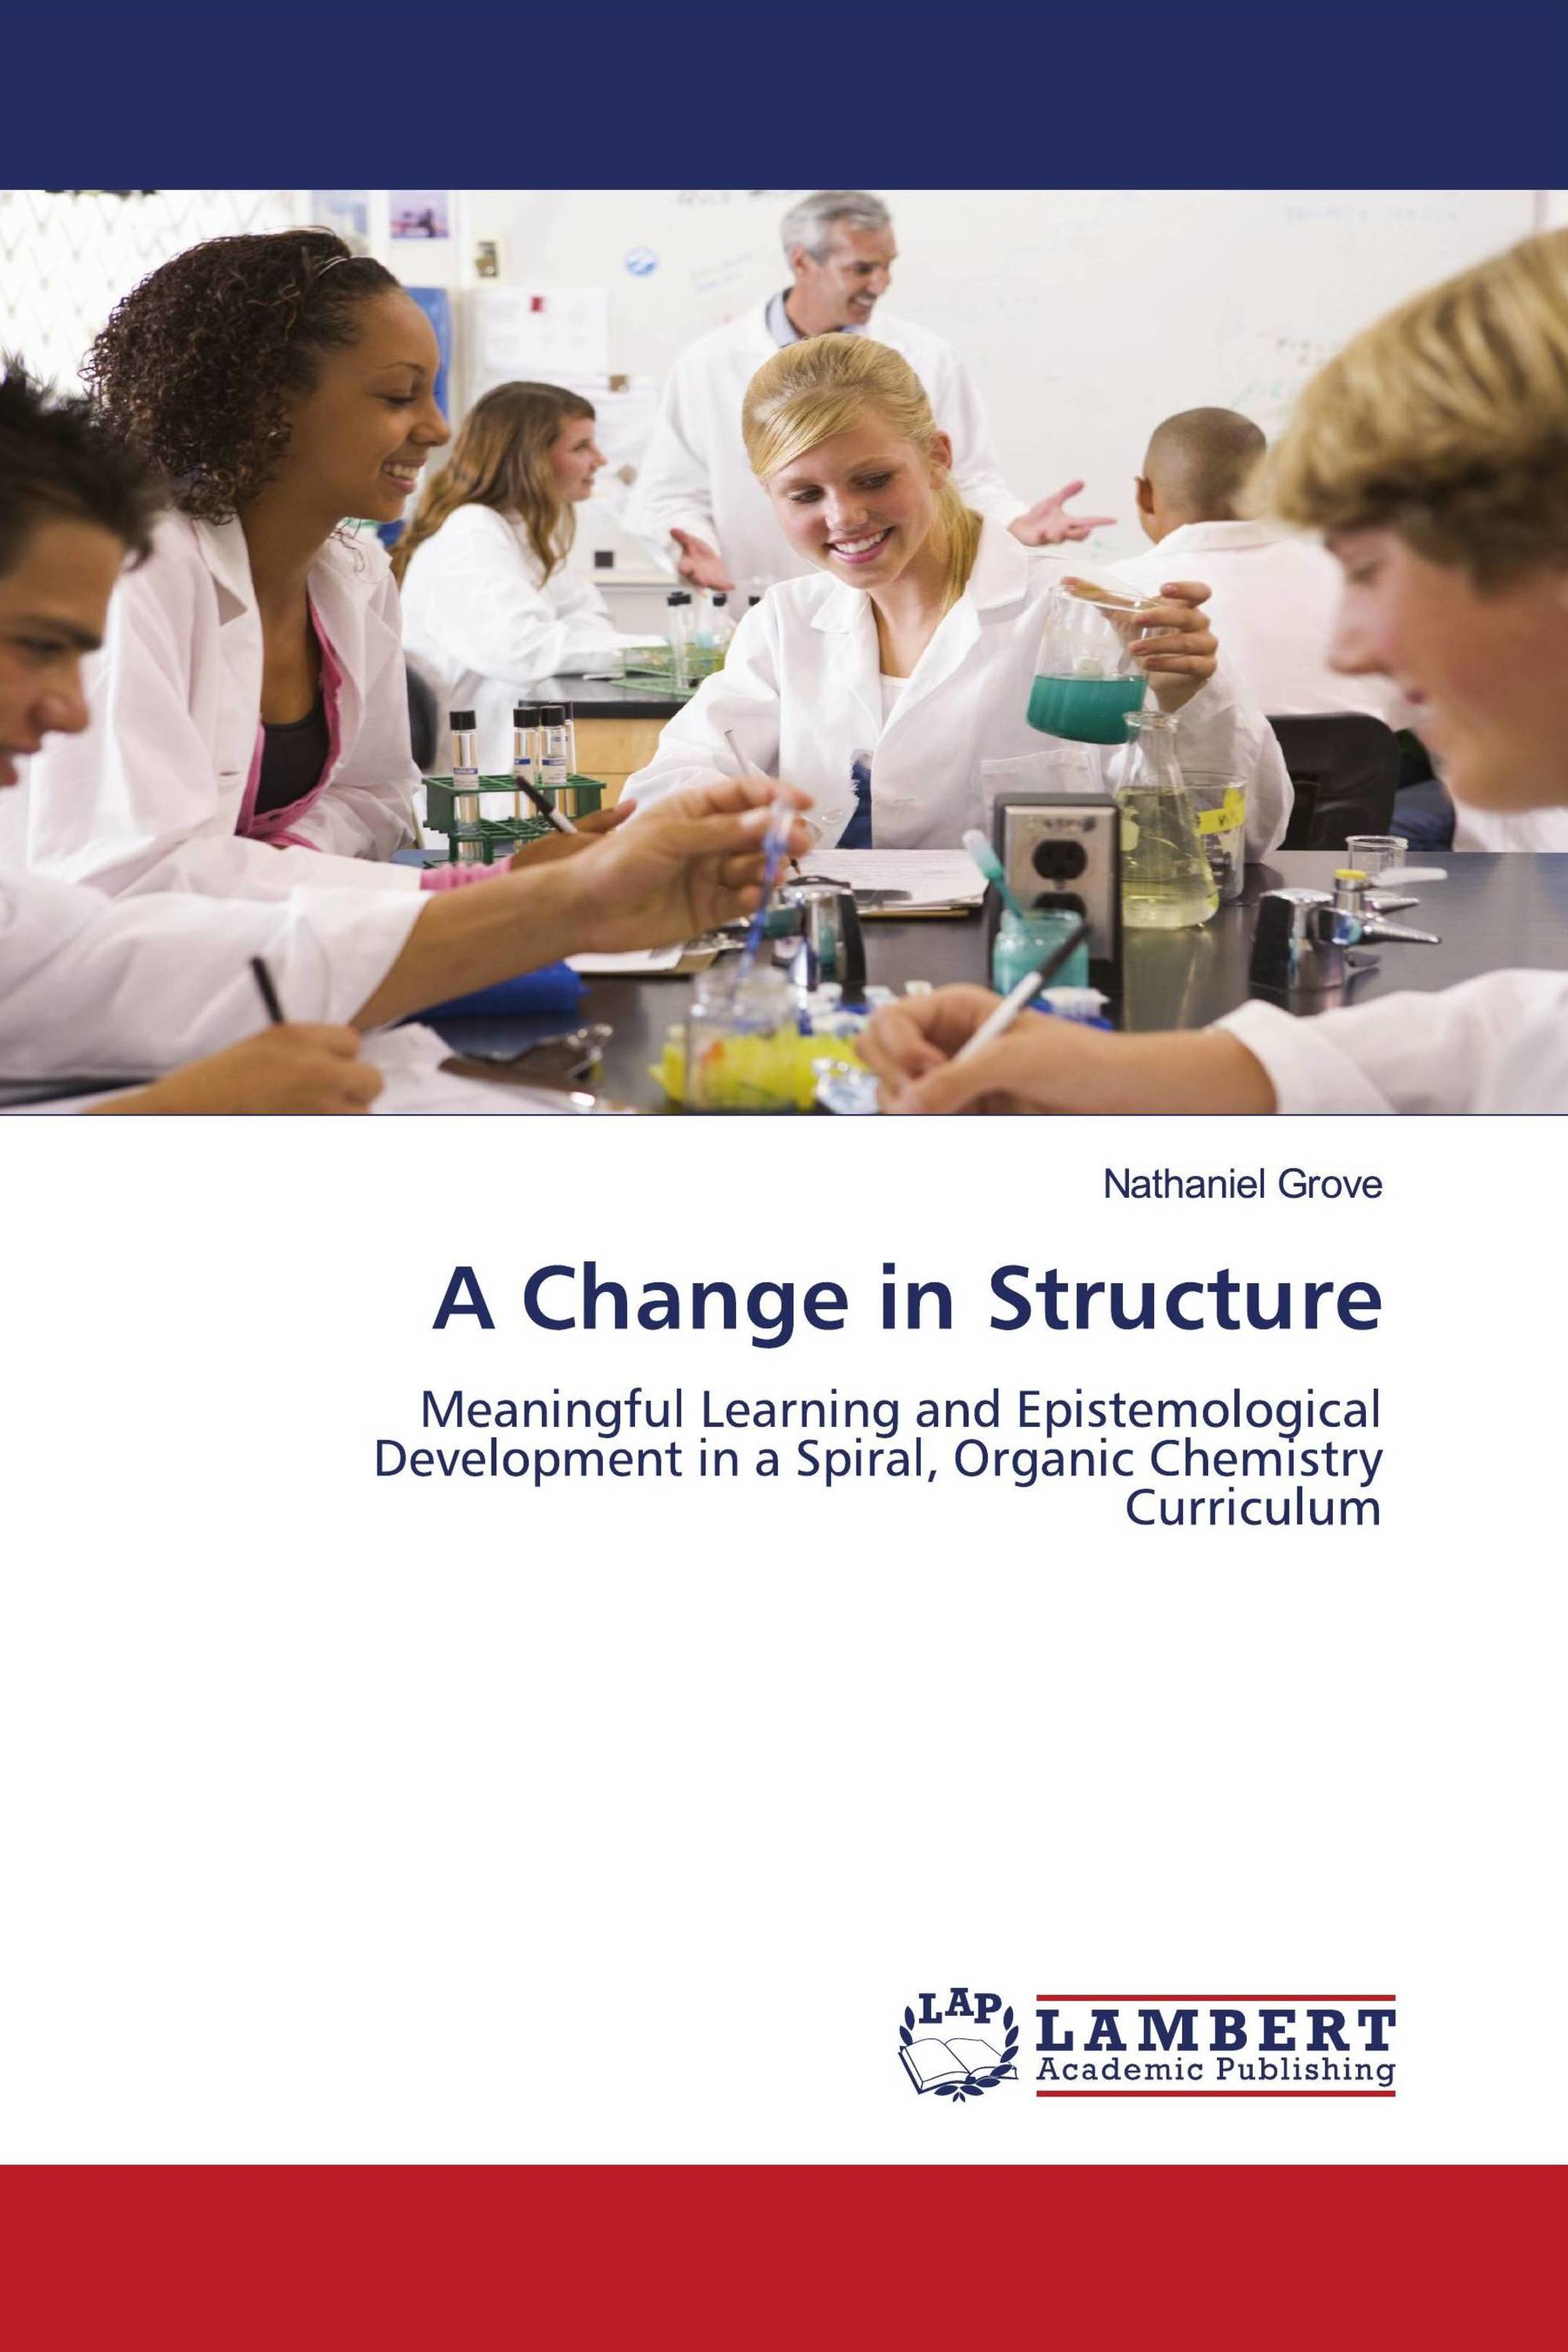 A Change in Structure